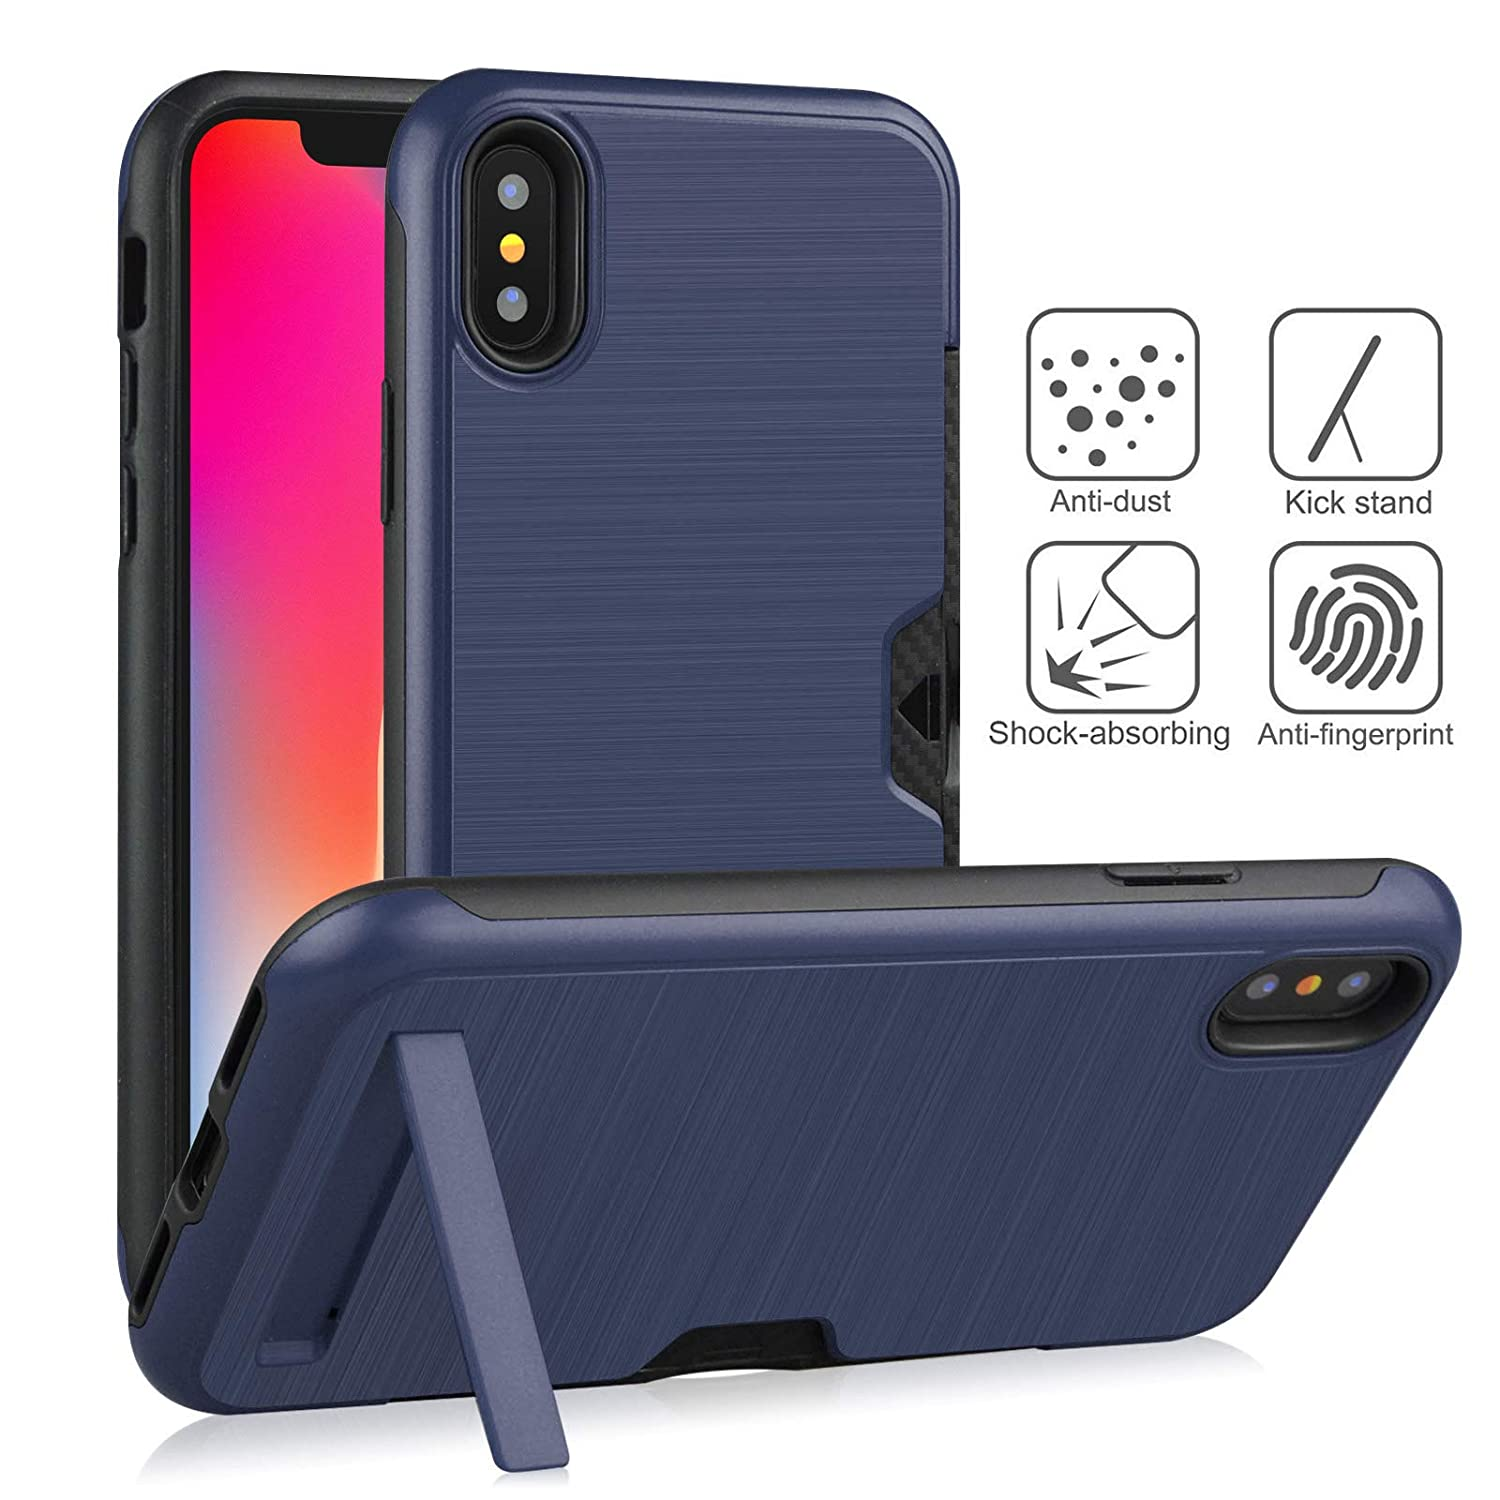 iPhone Xs Max Case,DAMONDY Kickstand Ultra Thin Dual Layer Shock Protective Rugged Armor Hybrid PC+Soft TPU Heavy Duty Protection Card Slot Holder Cover Case for iPhone Xs Max 6.5 inch-Mint